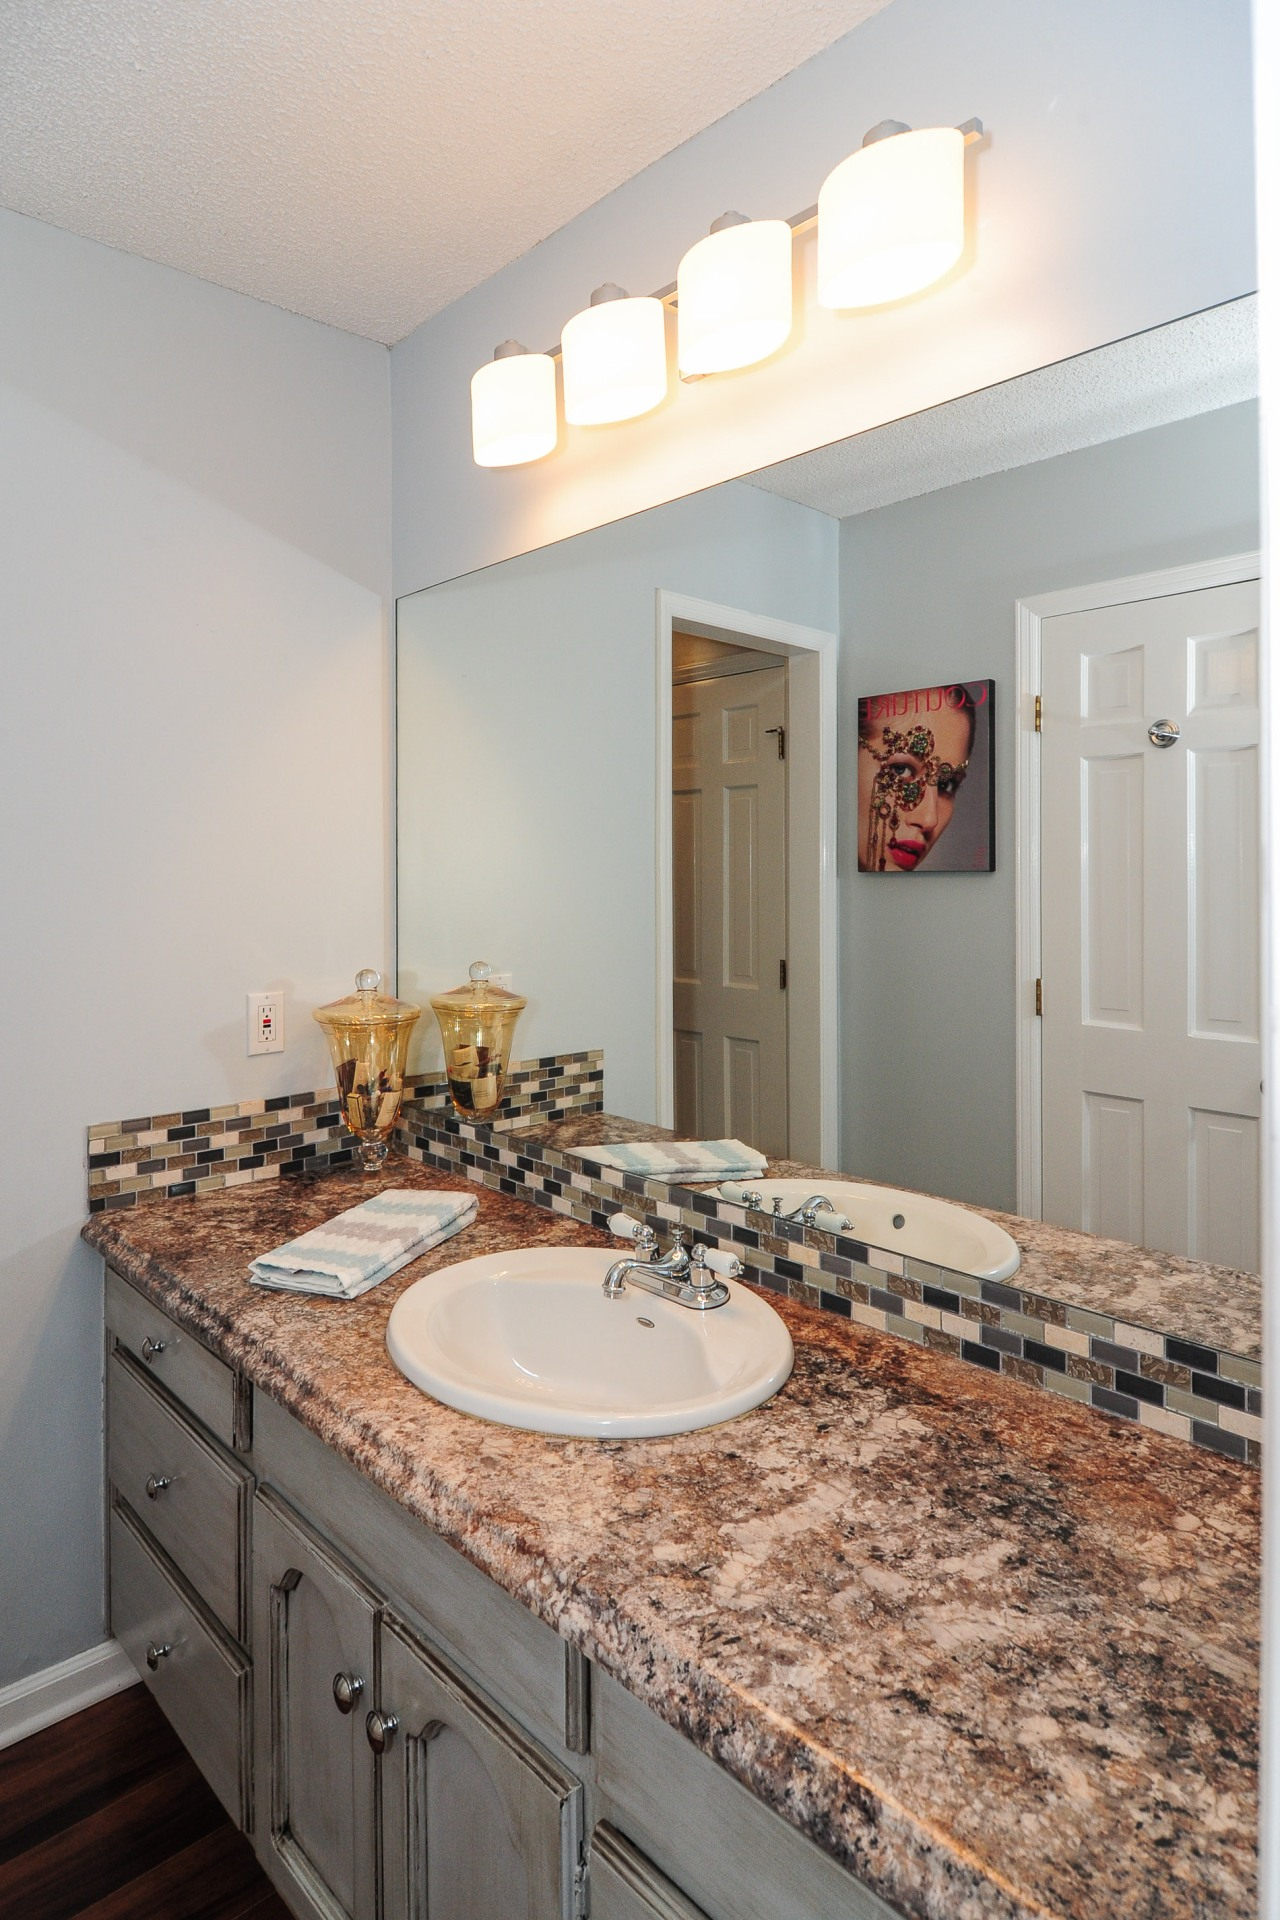 *drum roll* After the bathroom reno--getting ready for events and photo shoots in here is now an easy task. Who knew that counter tops were so handy *wink*